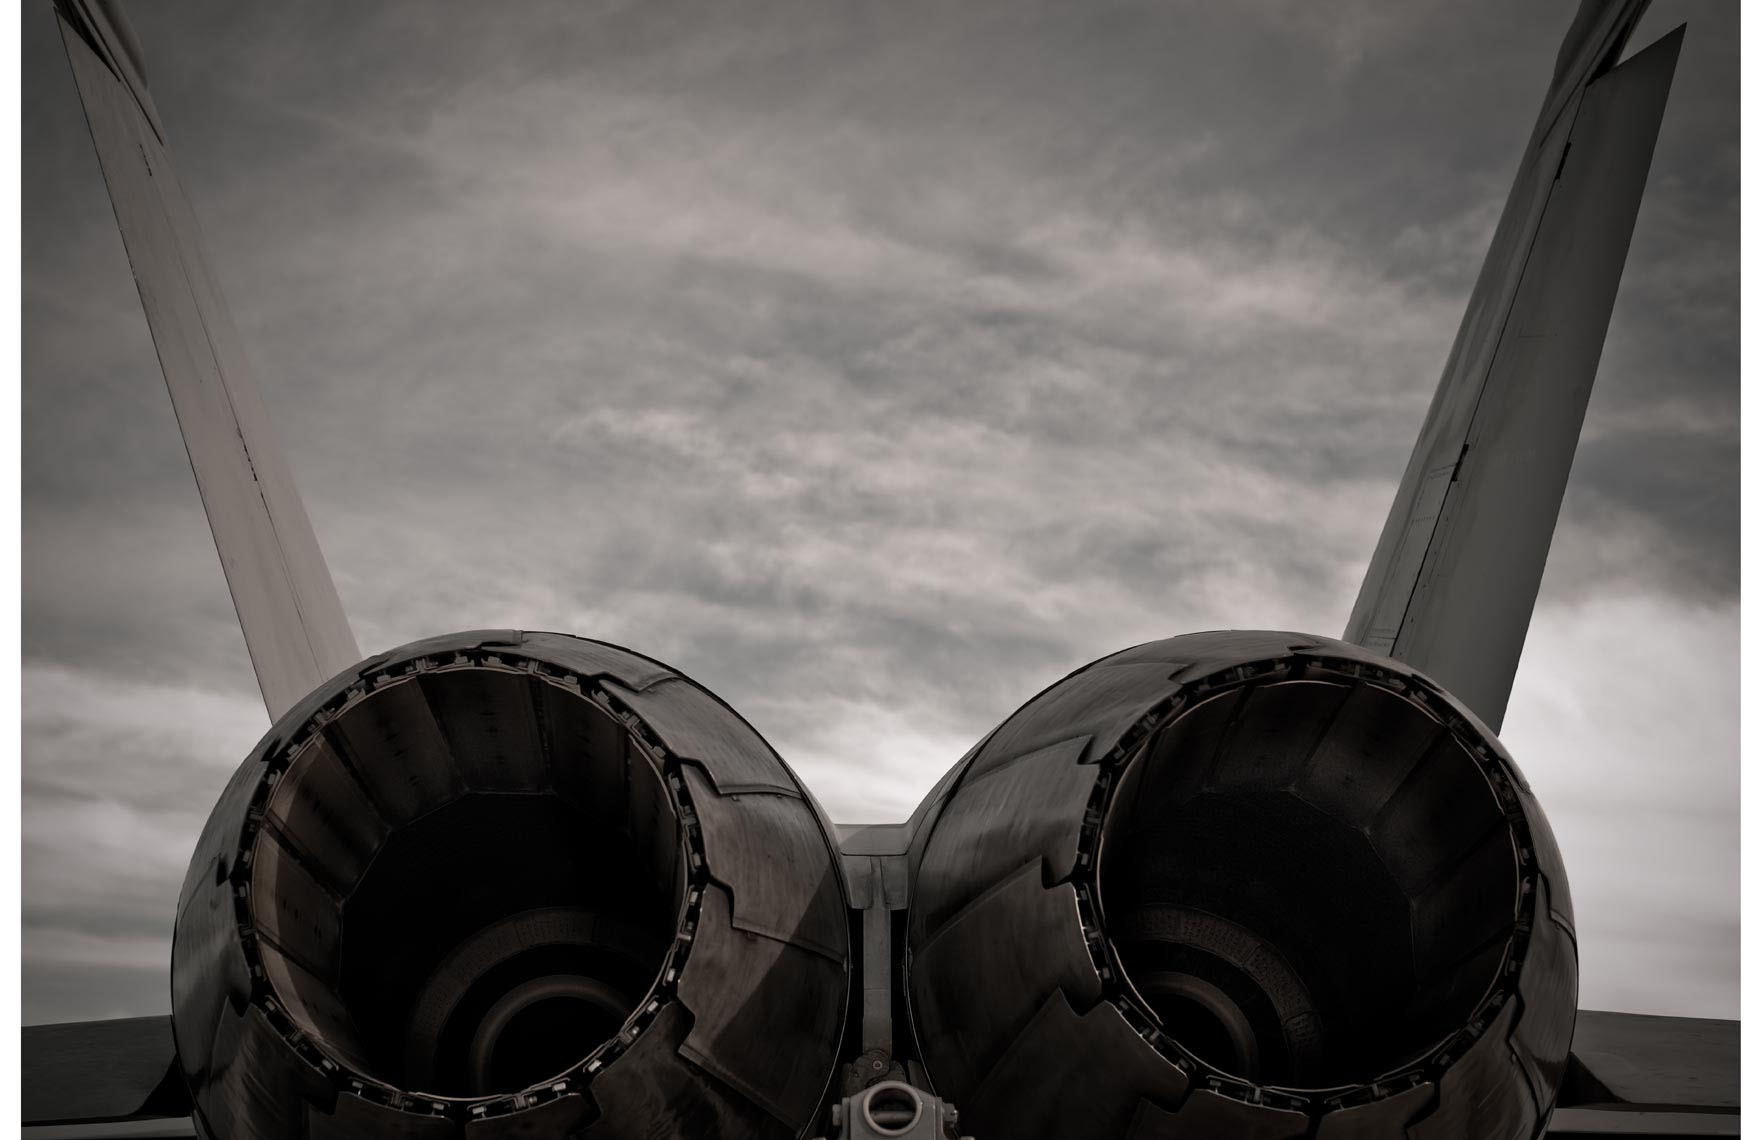 US_NAVY_F18_Hornet-Exhaust-Vents.jpg